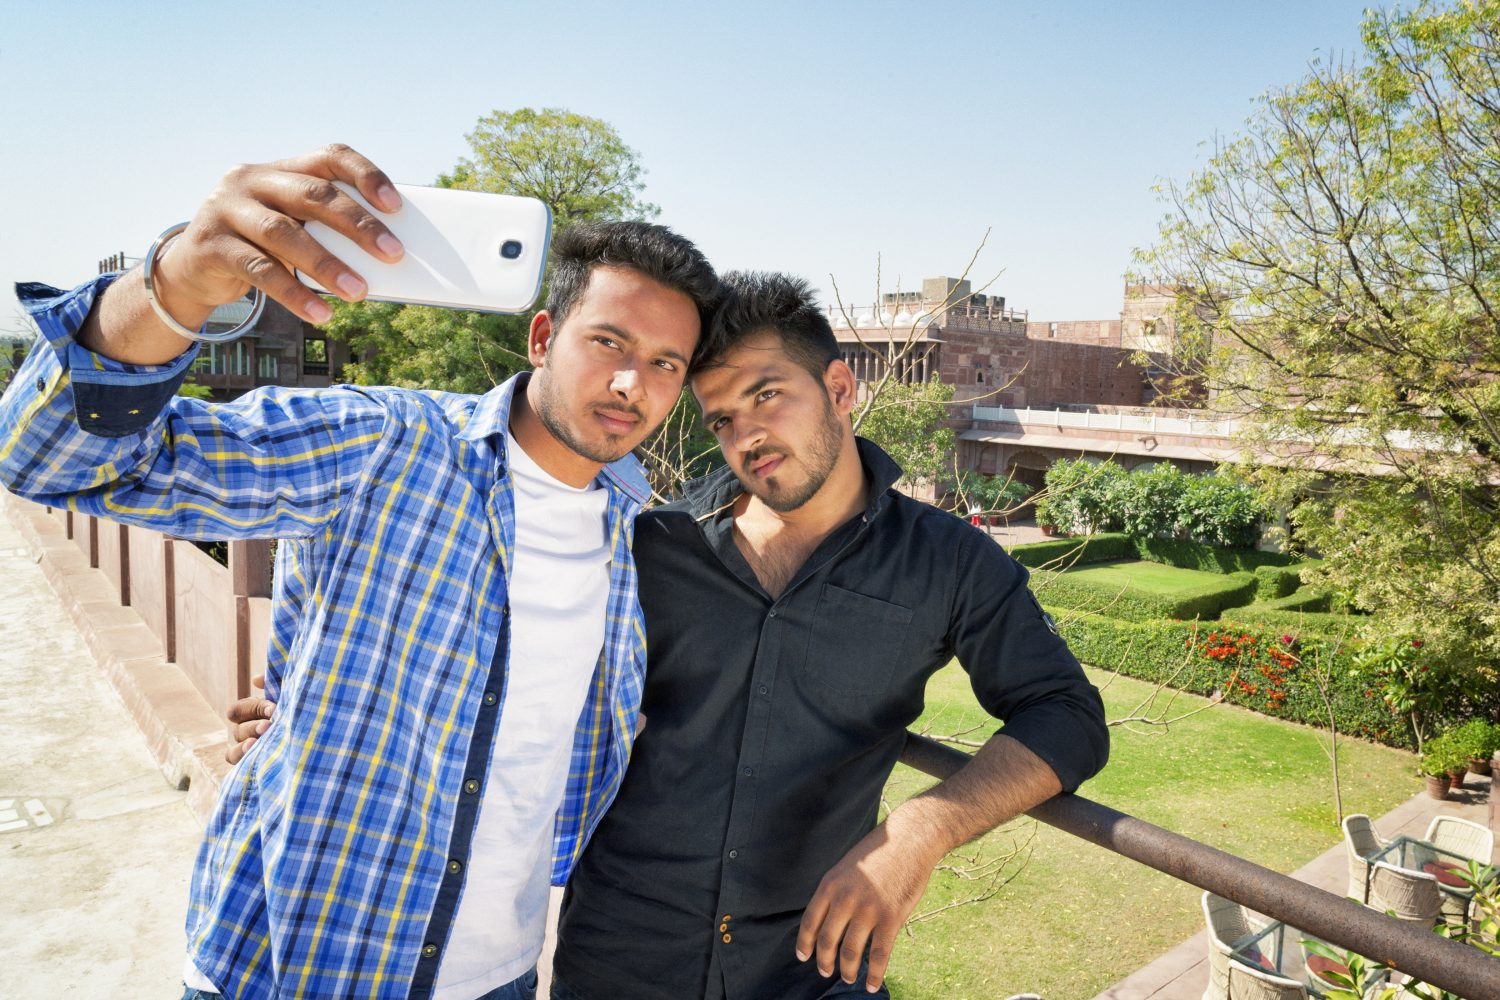 Two young Indian men taking a selfie together.